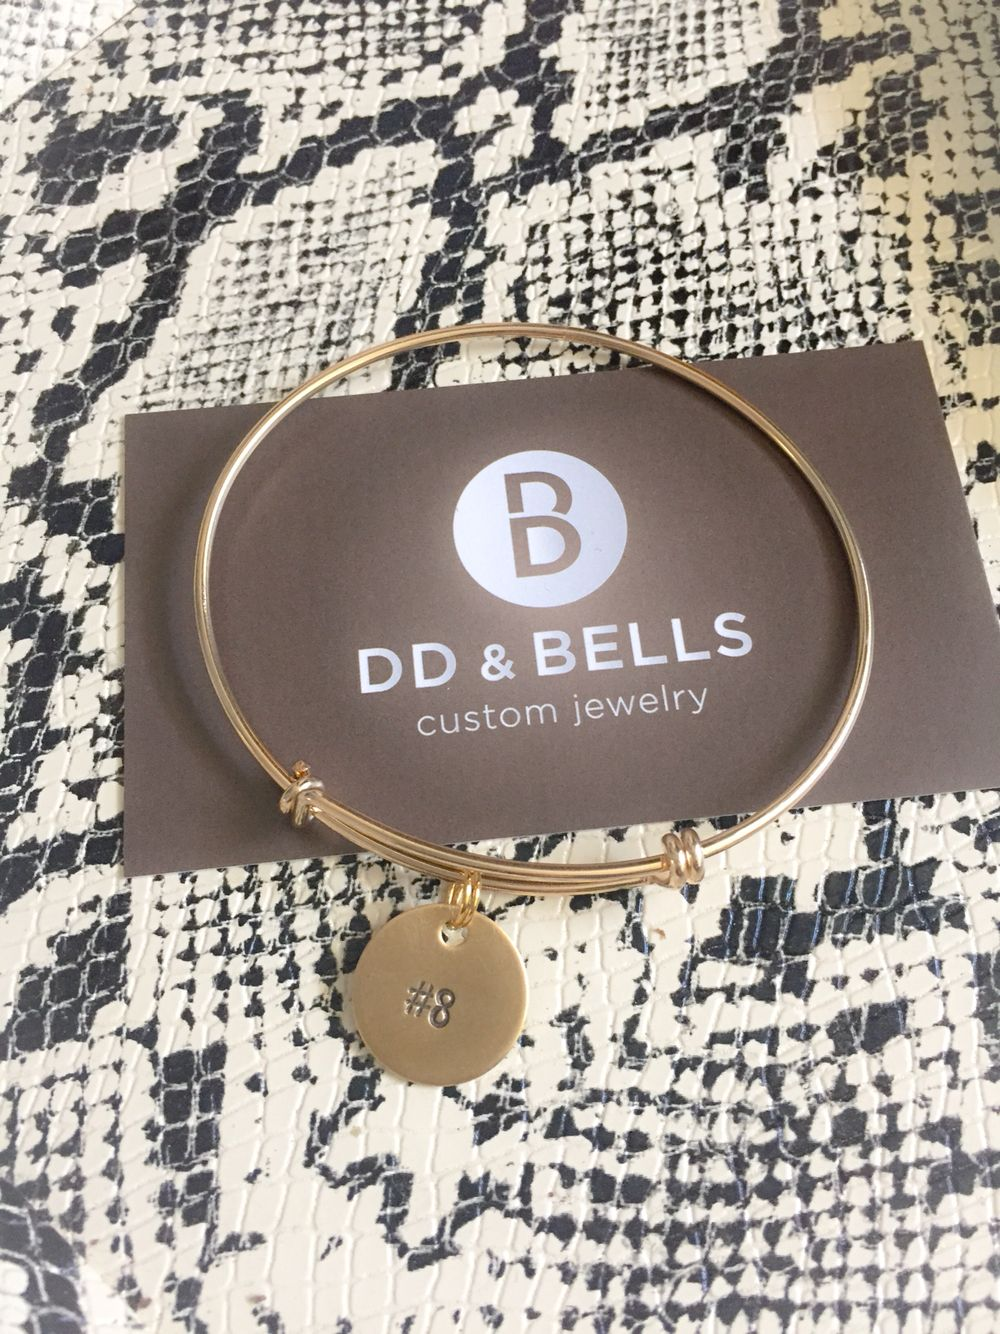 A new twist to D&B's custom bracelets: 14k gold filled bangle with personalized son's sports number. Thanks @kkwilder5! #ddandbells